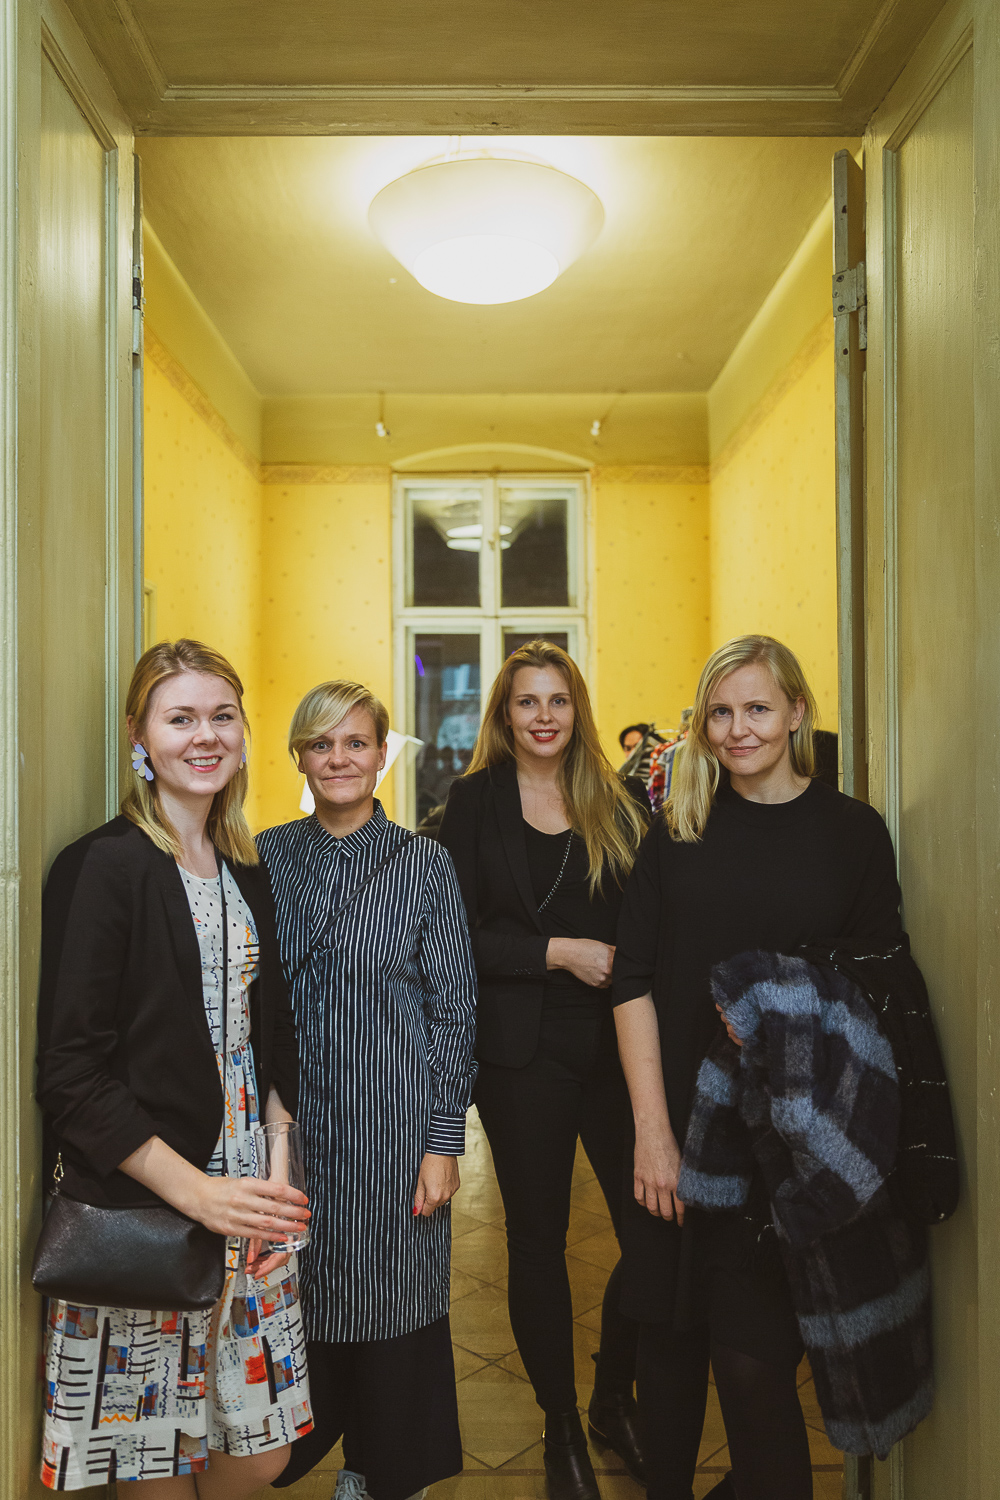 2018-VALISE-Glint-LifestyleFinland-EveningVernissage-webres-7819.jpg